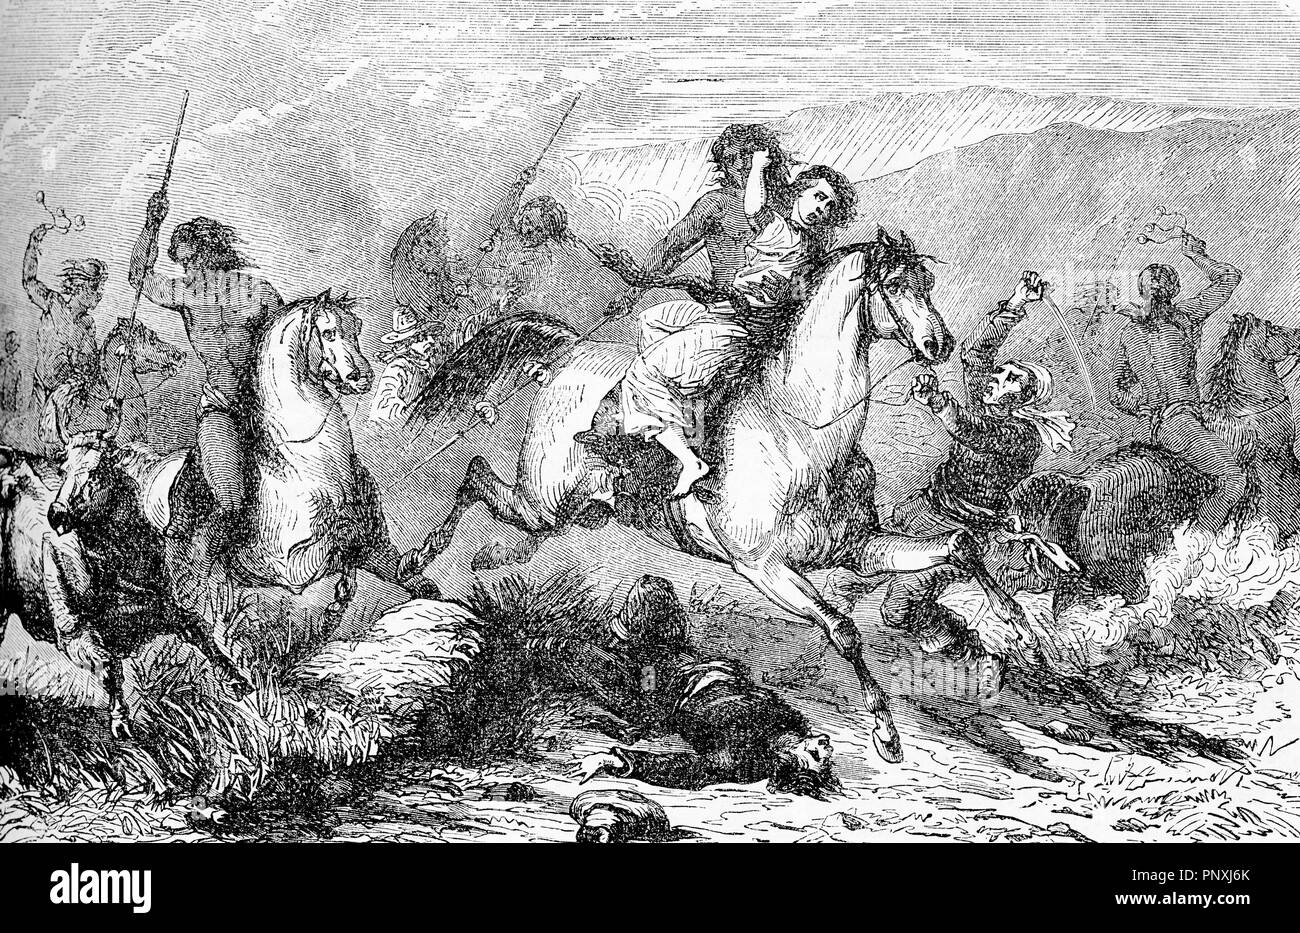 South America horseback  indigenous brutally attack people with lances und bolas, stealing women and cattle, vintage engraving - Stock Image